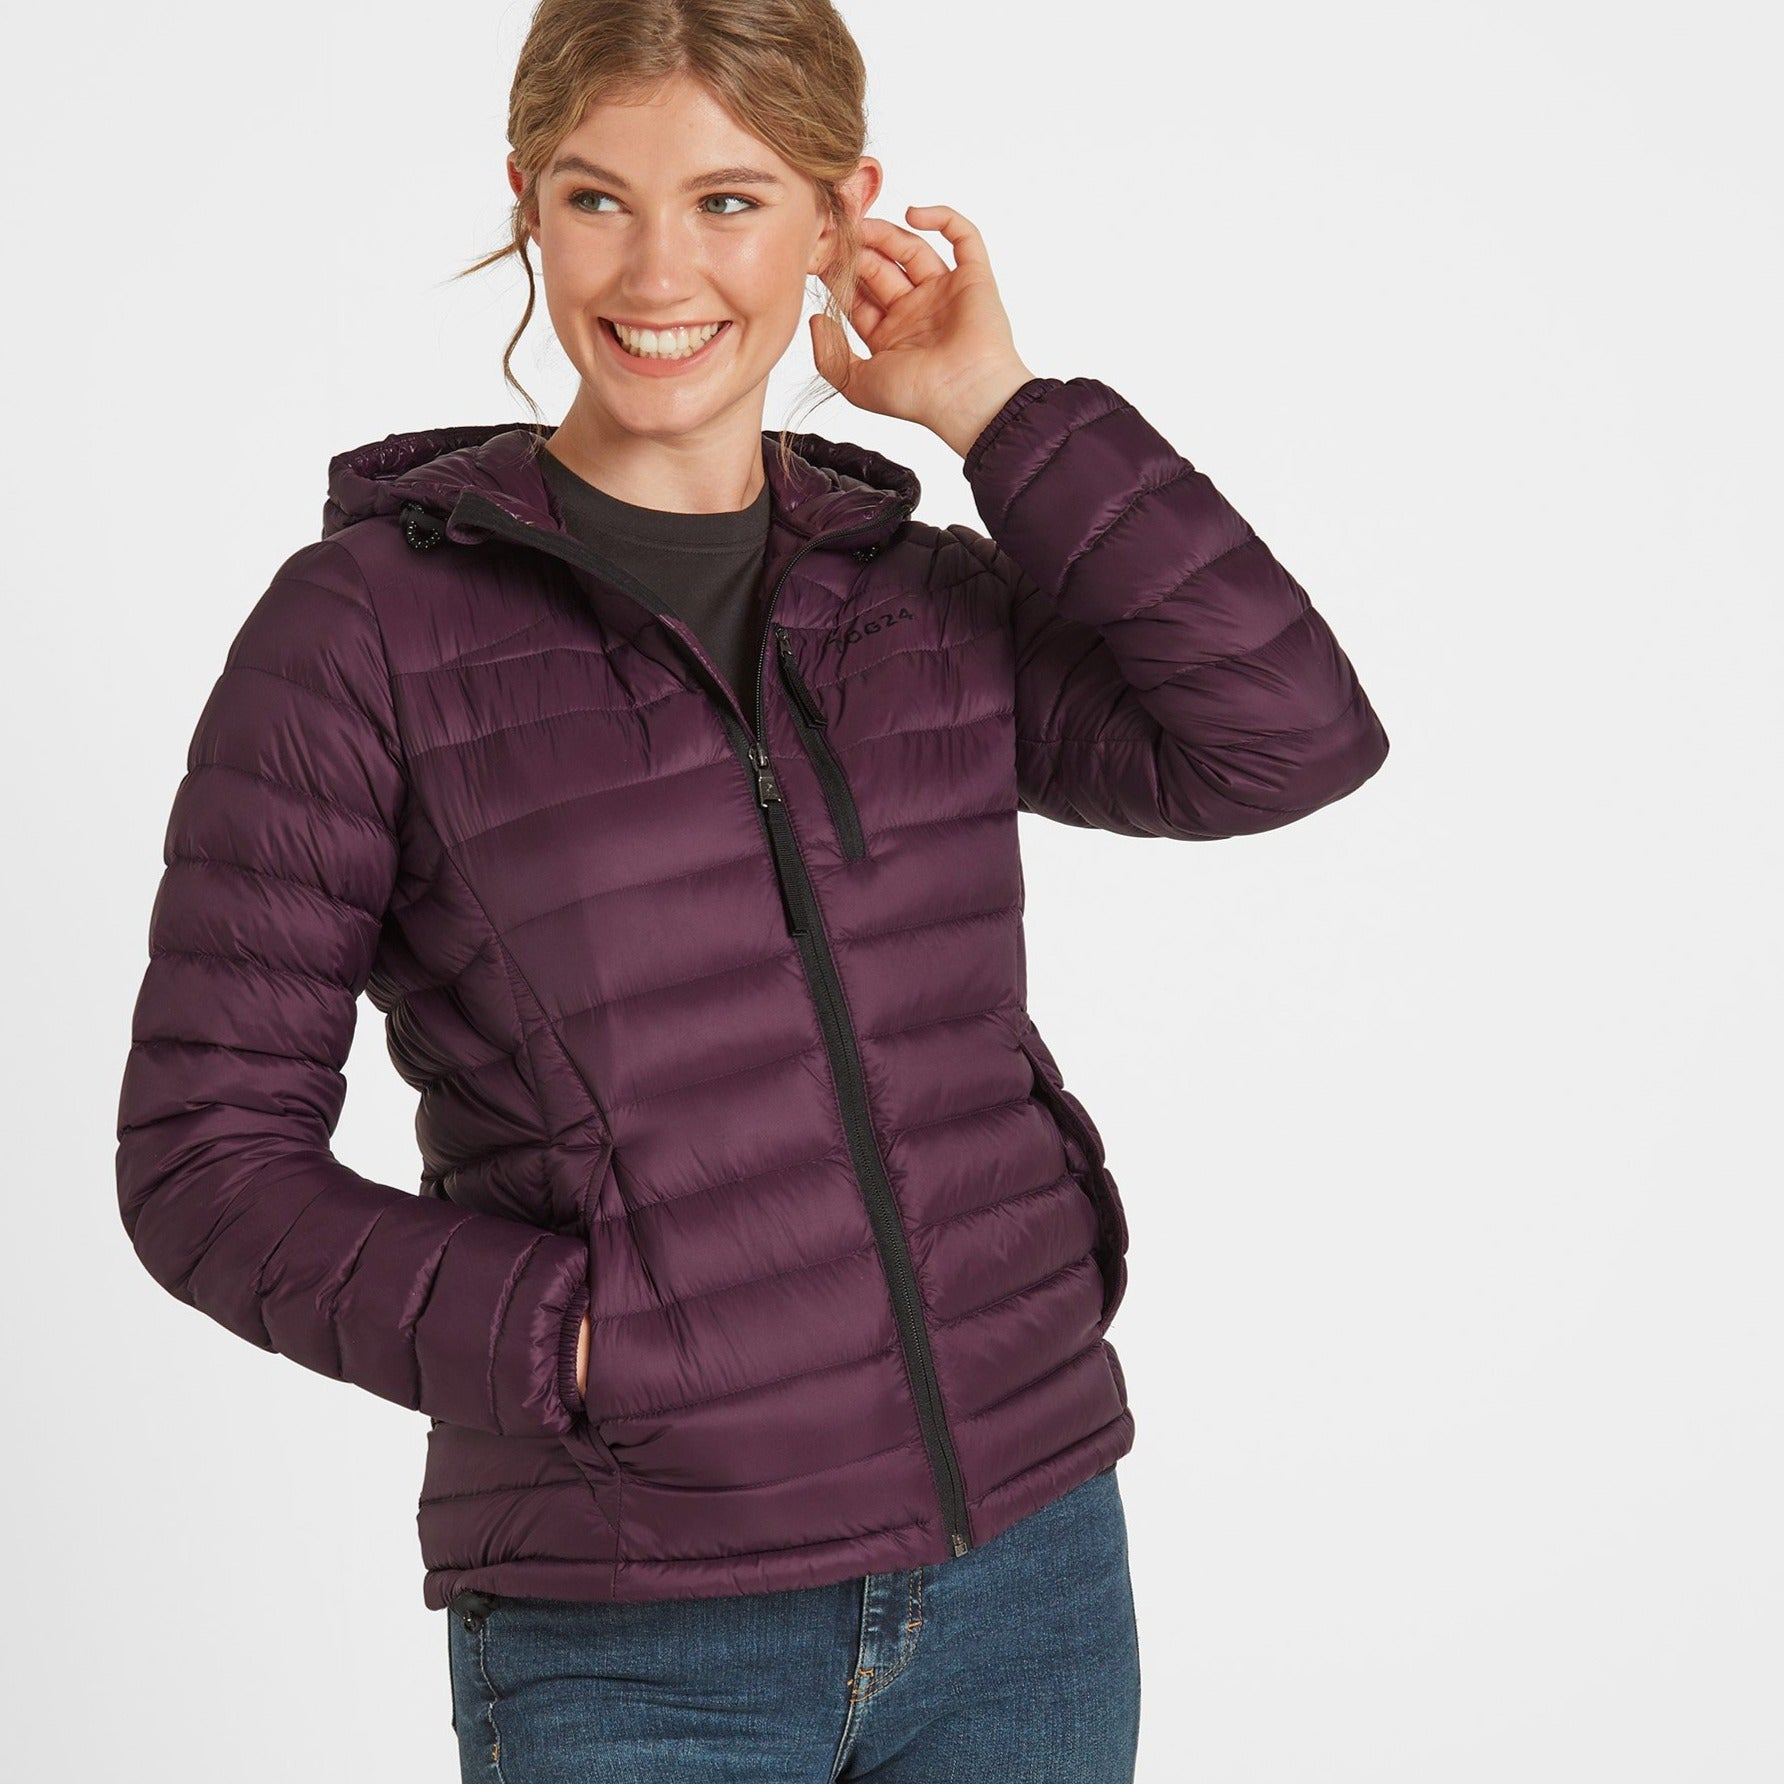 Drax Womens Hooded Down Jacket - Aubergine